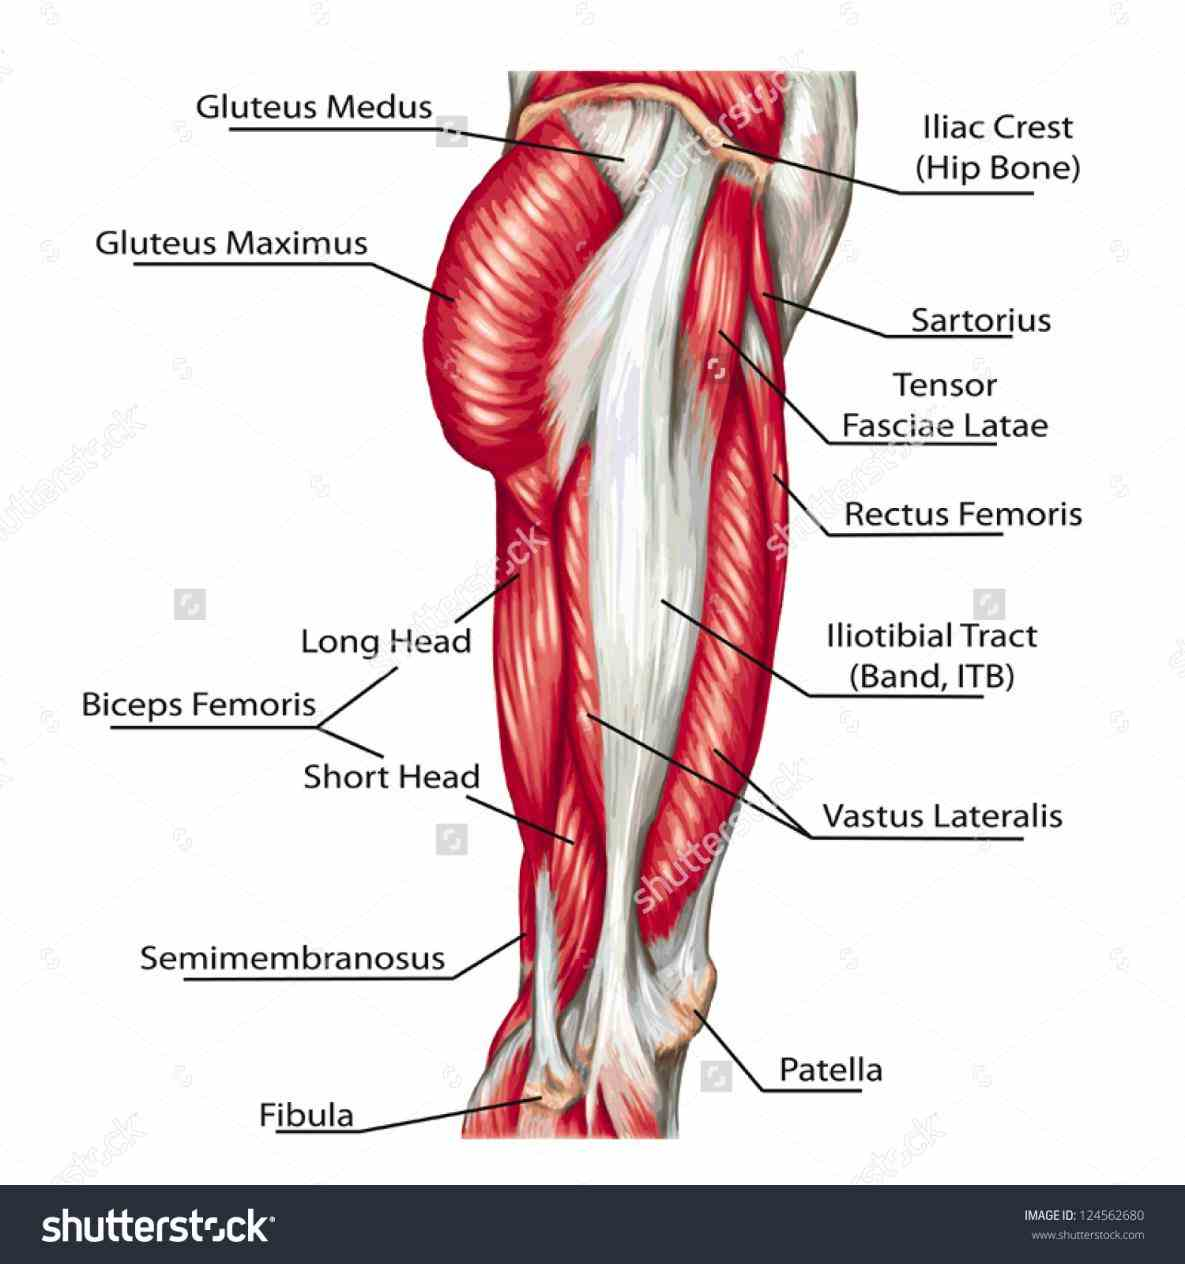 throughout body that move skeleton maintain posture through steady contraction and muscles Anatomy Of The Muscular System of the